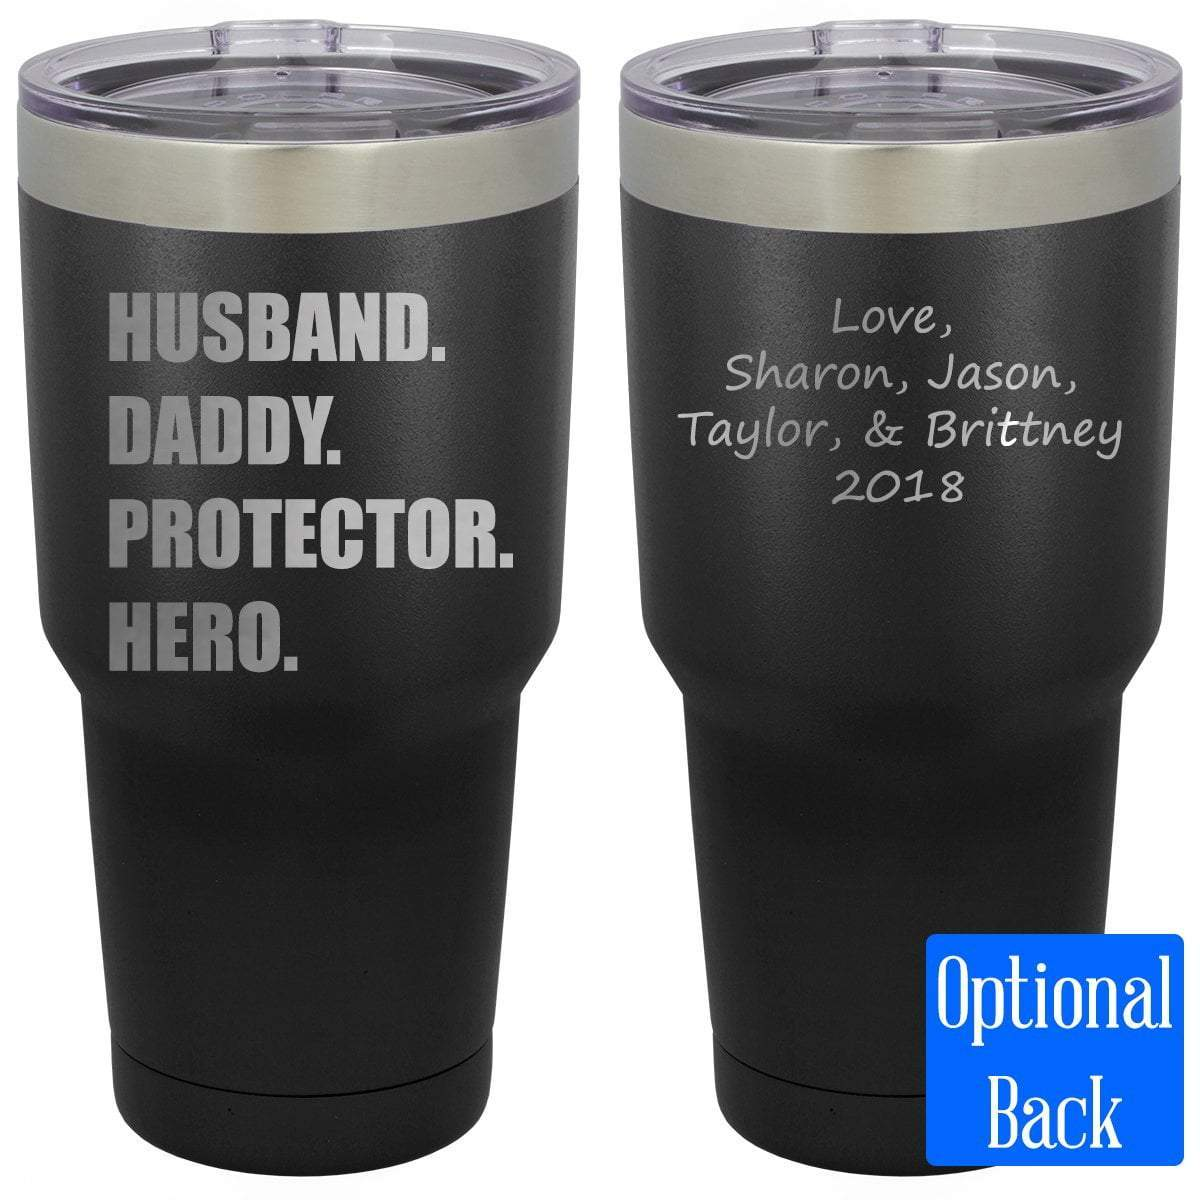 MacAttackGear Drinkware 30 oz Tumbler / Black Husband Daddy Protector Hero Engraved Tumbler